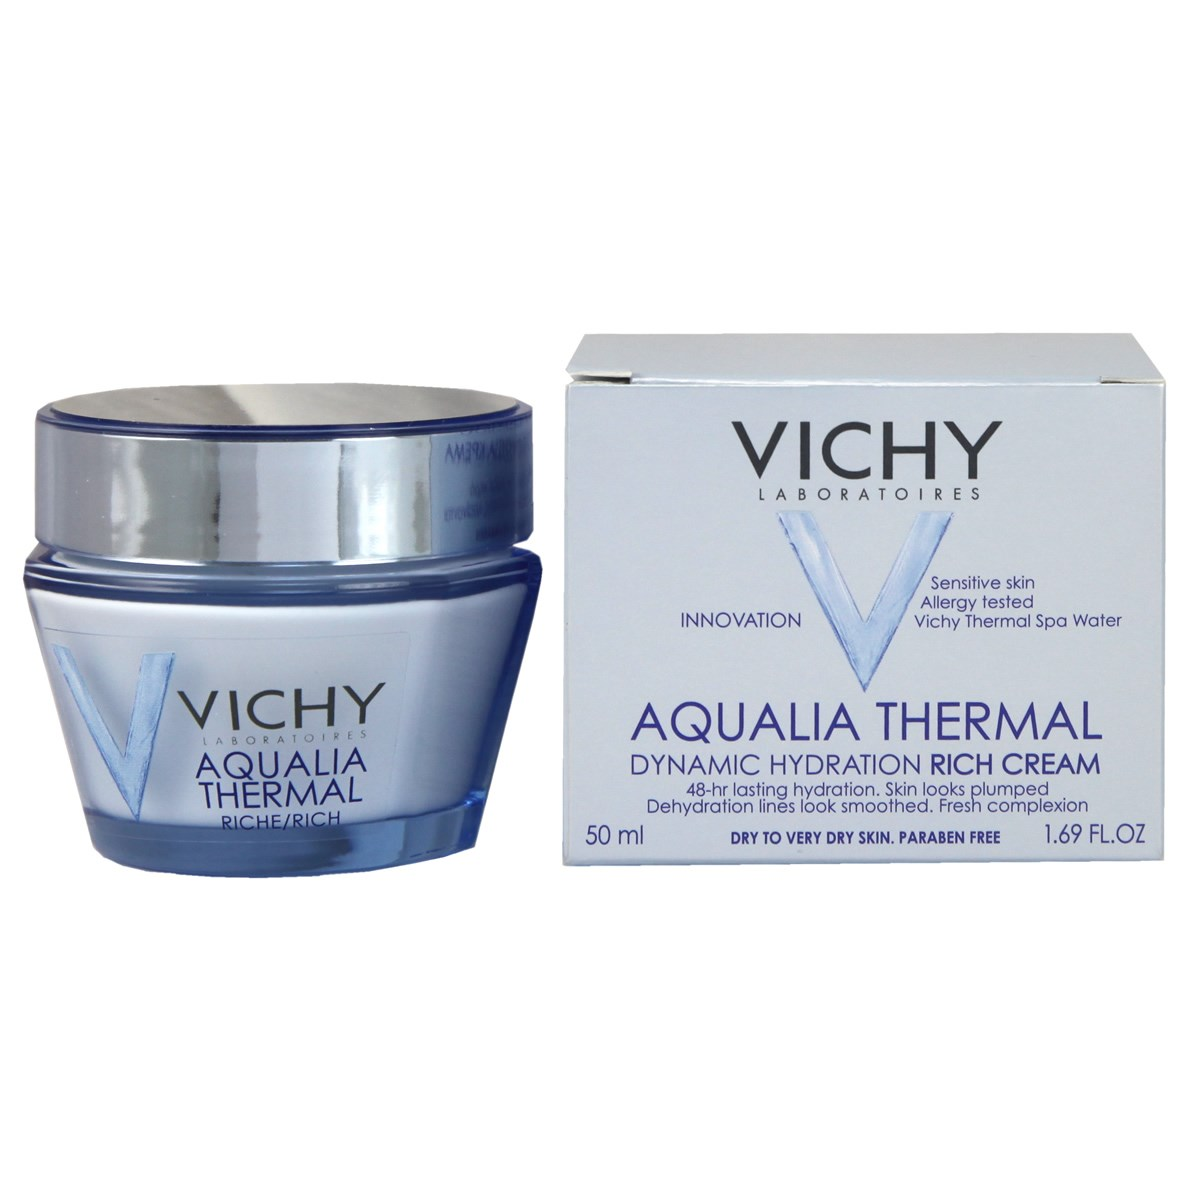 Vichy AQUALIA THERMAL bogata krema